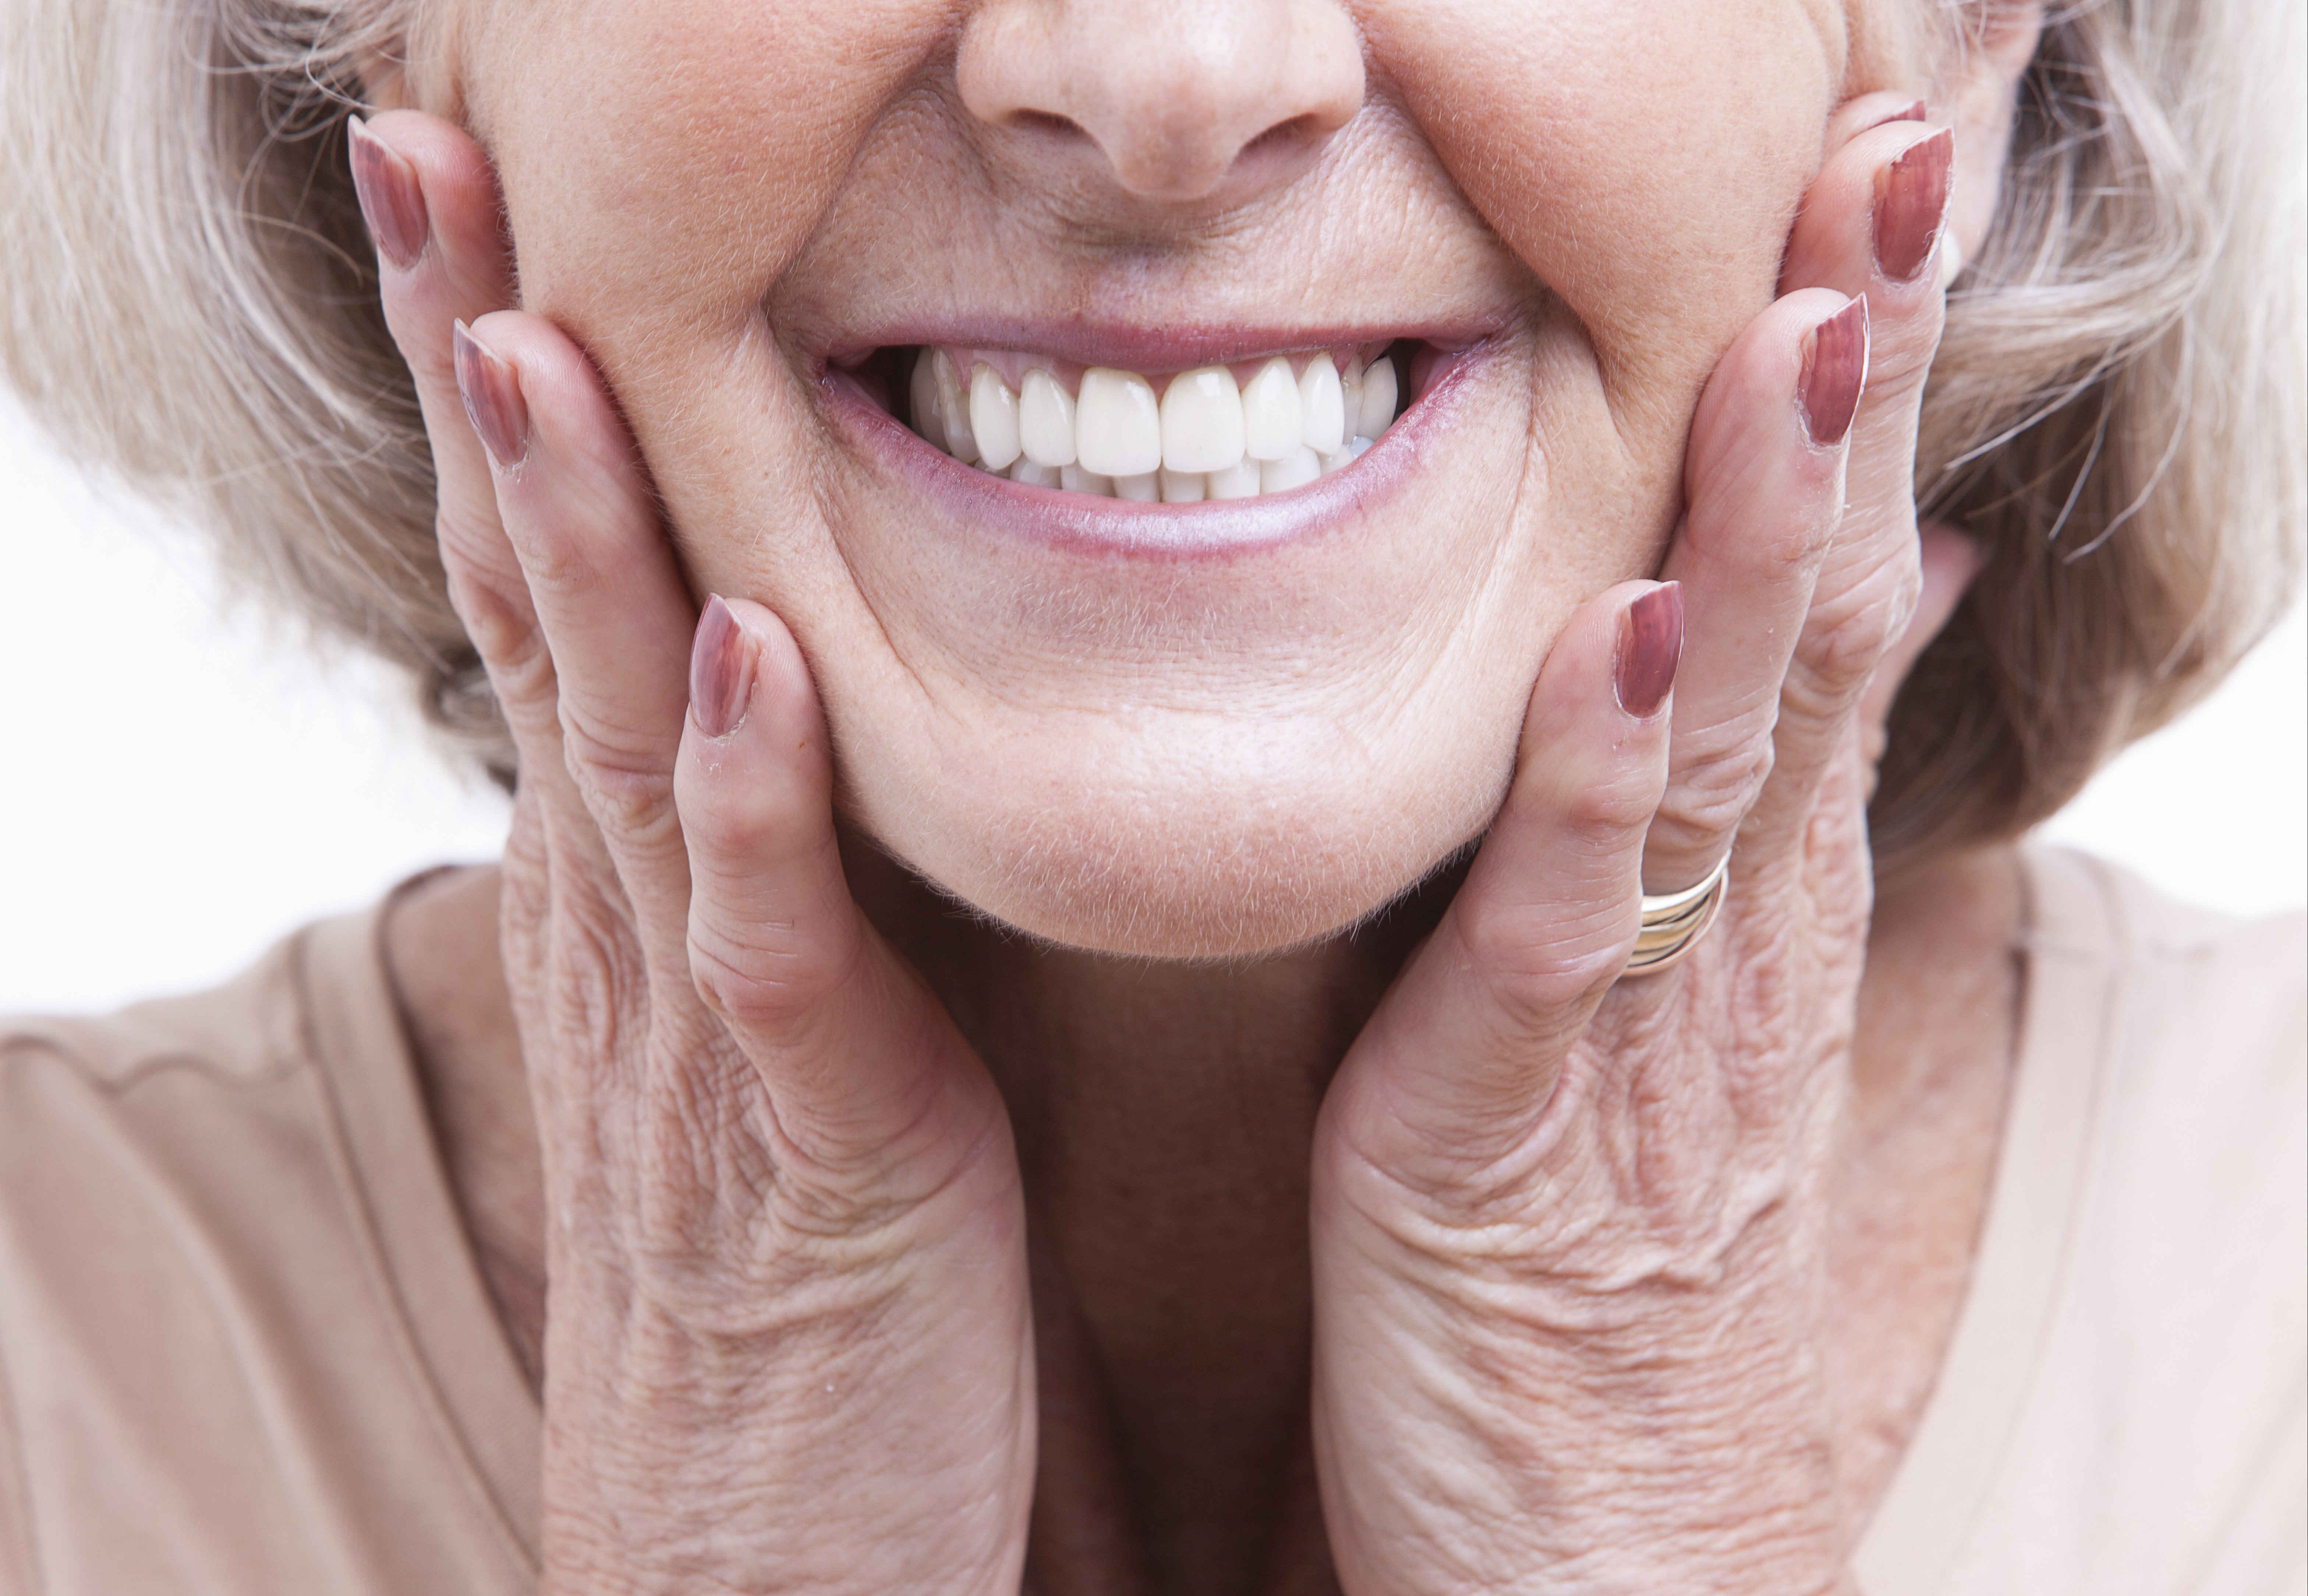 Mature Woman Smiling With Hands on Cheeks